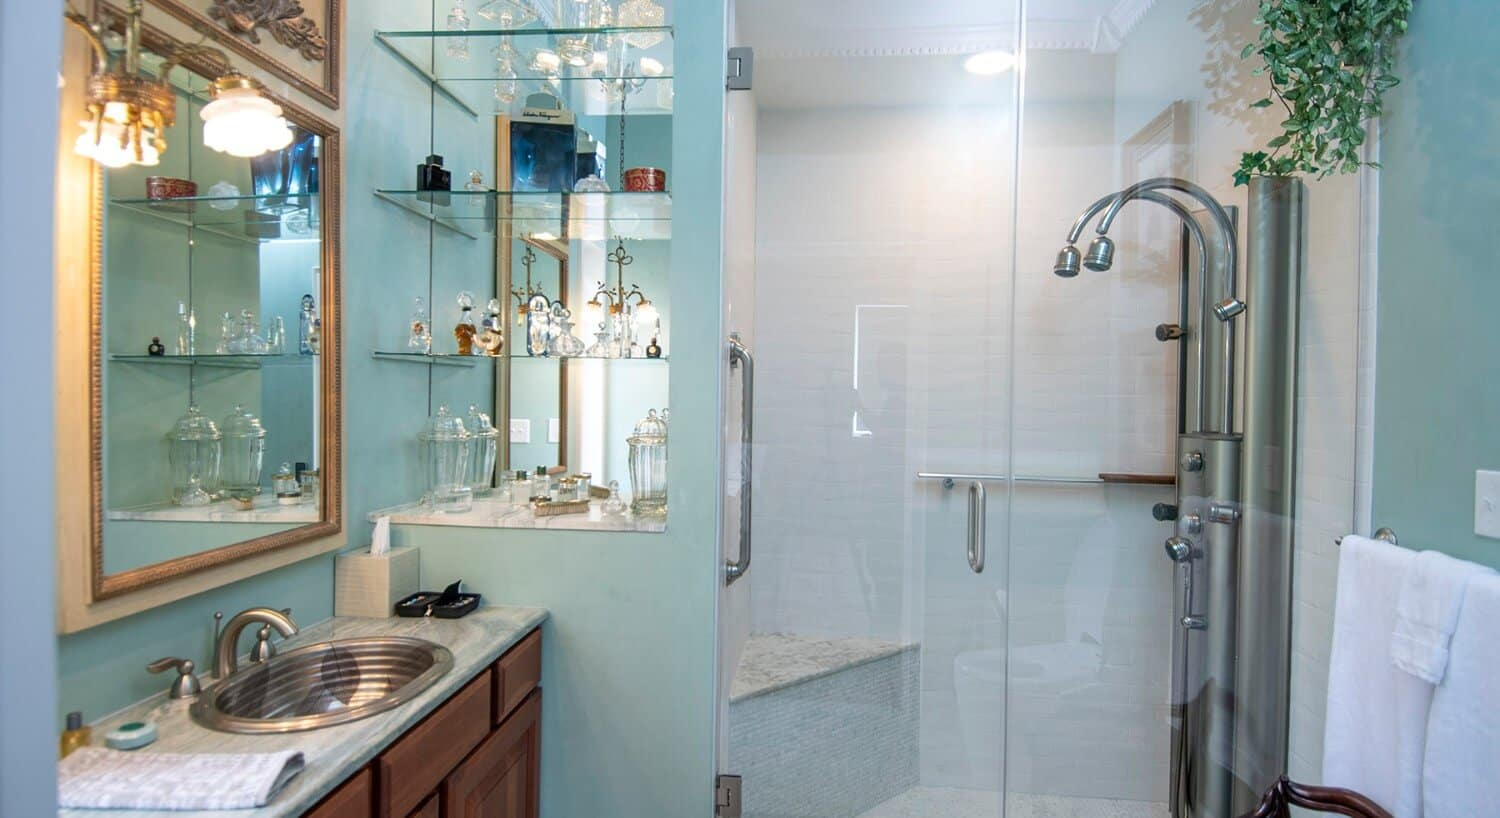 Bright bathroom with glassed-in shower, steel vanity sink and antique decor.